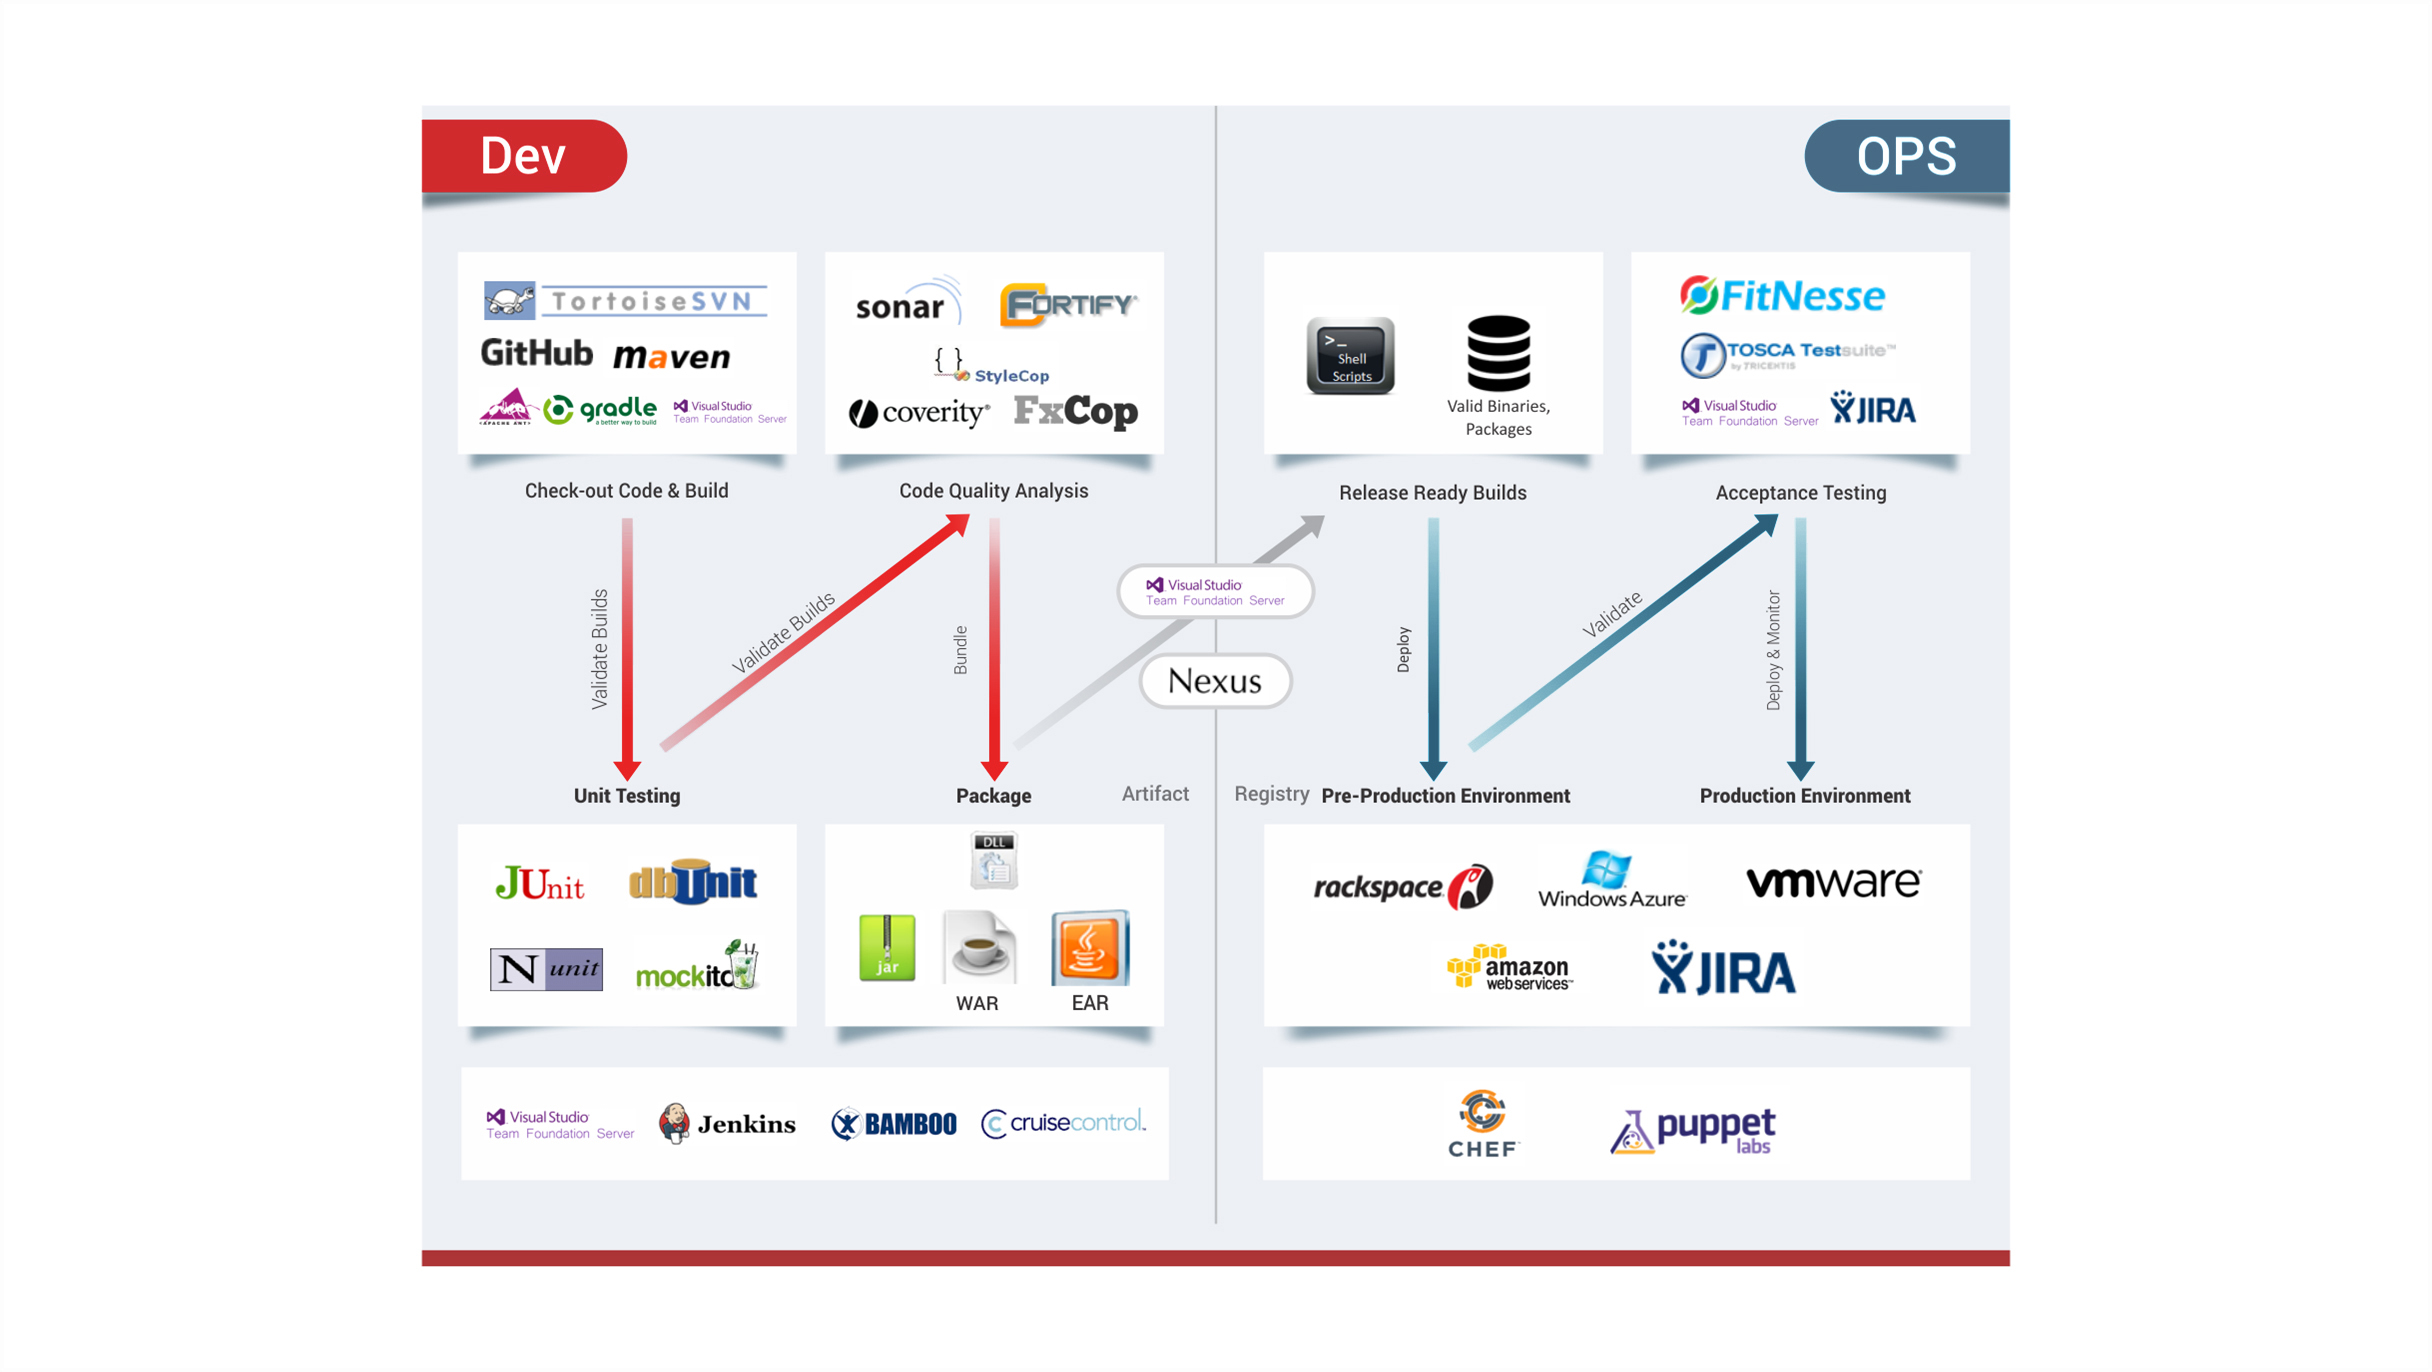 DevOps-Overview